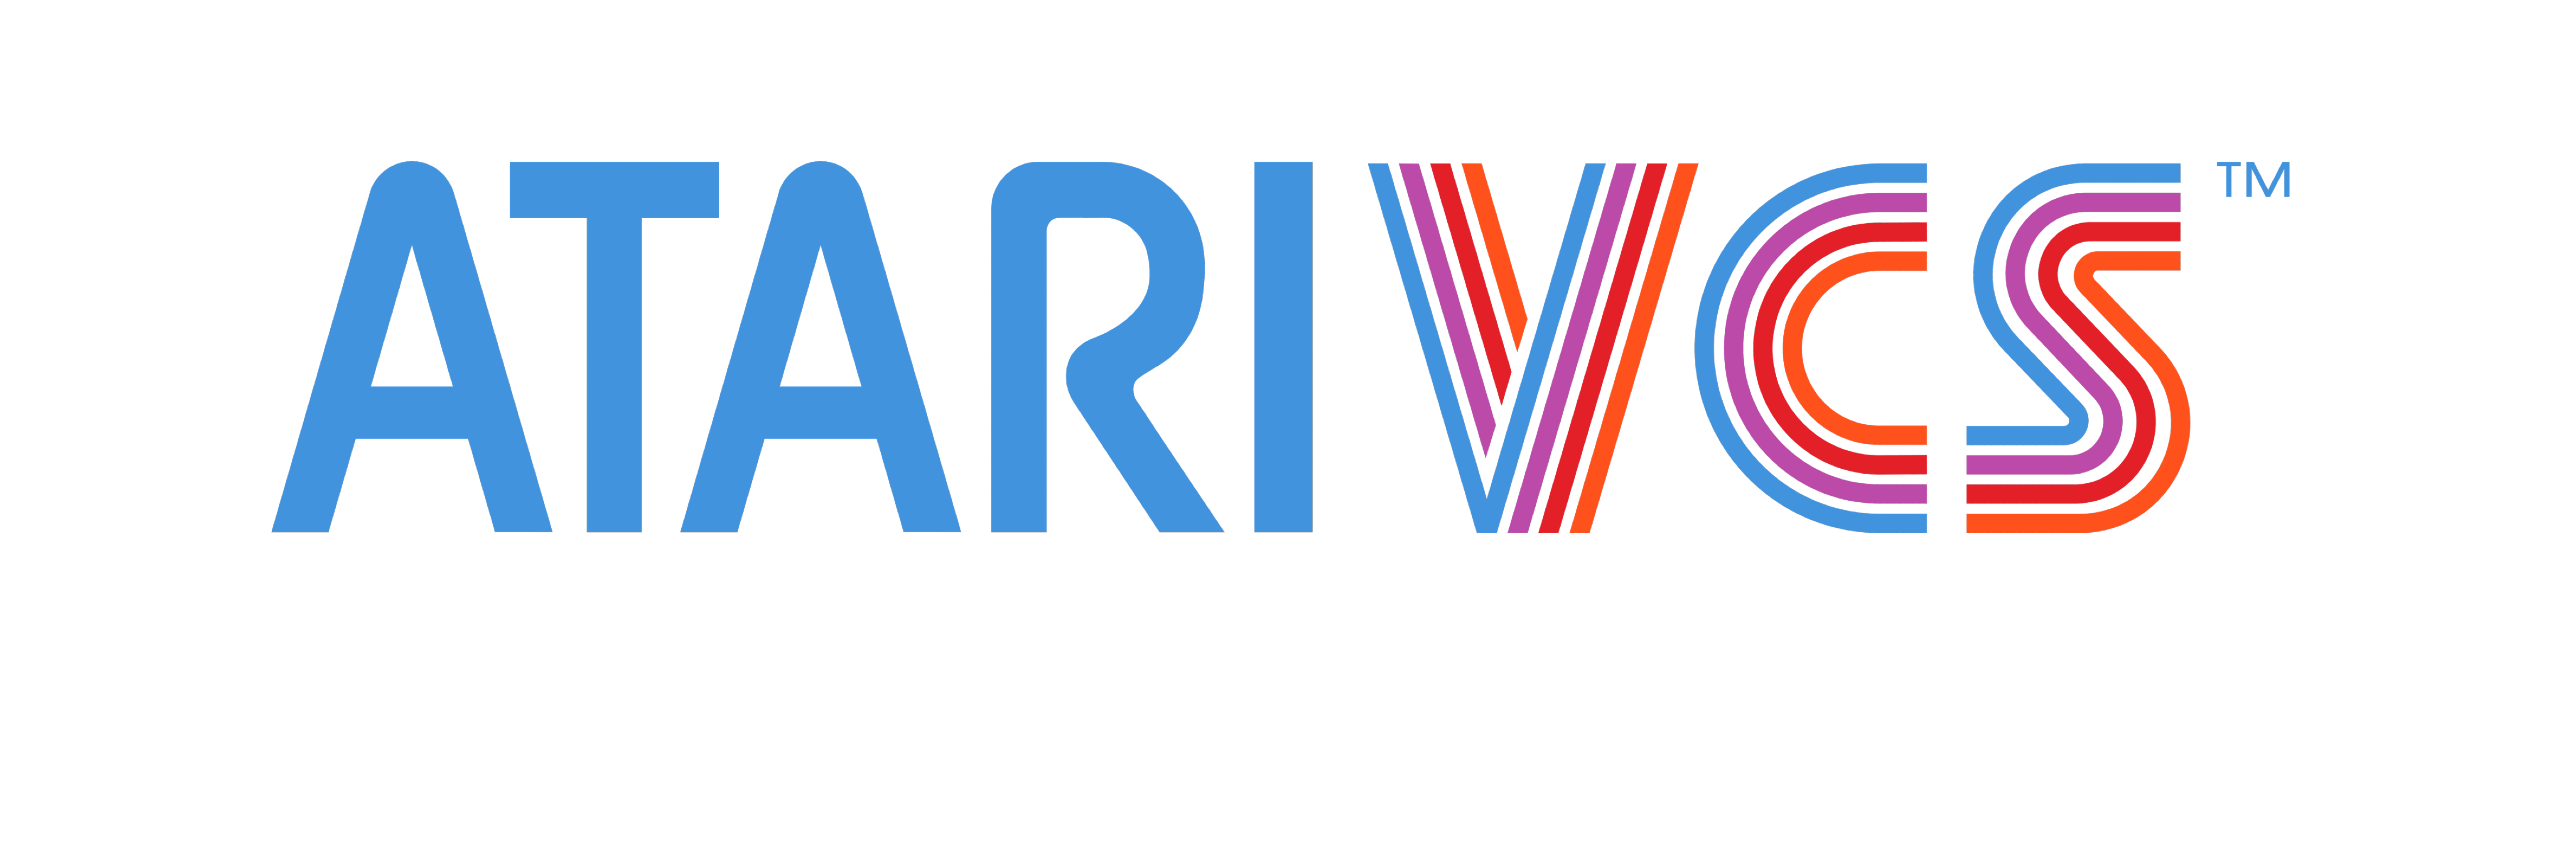 Atari VCS Storefront Opportunities (In partnership with Black Dog Gaming)